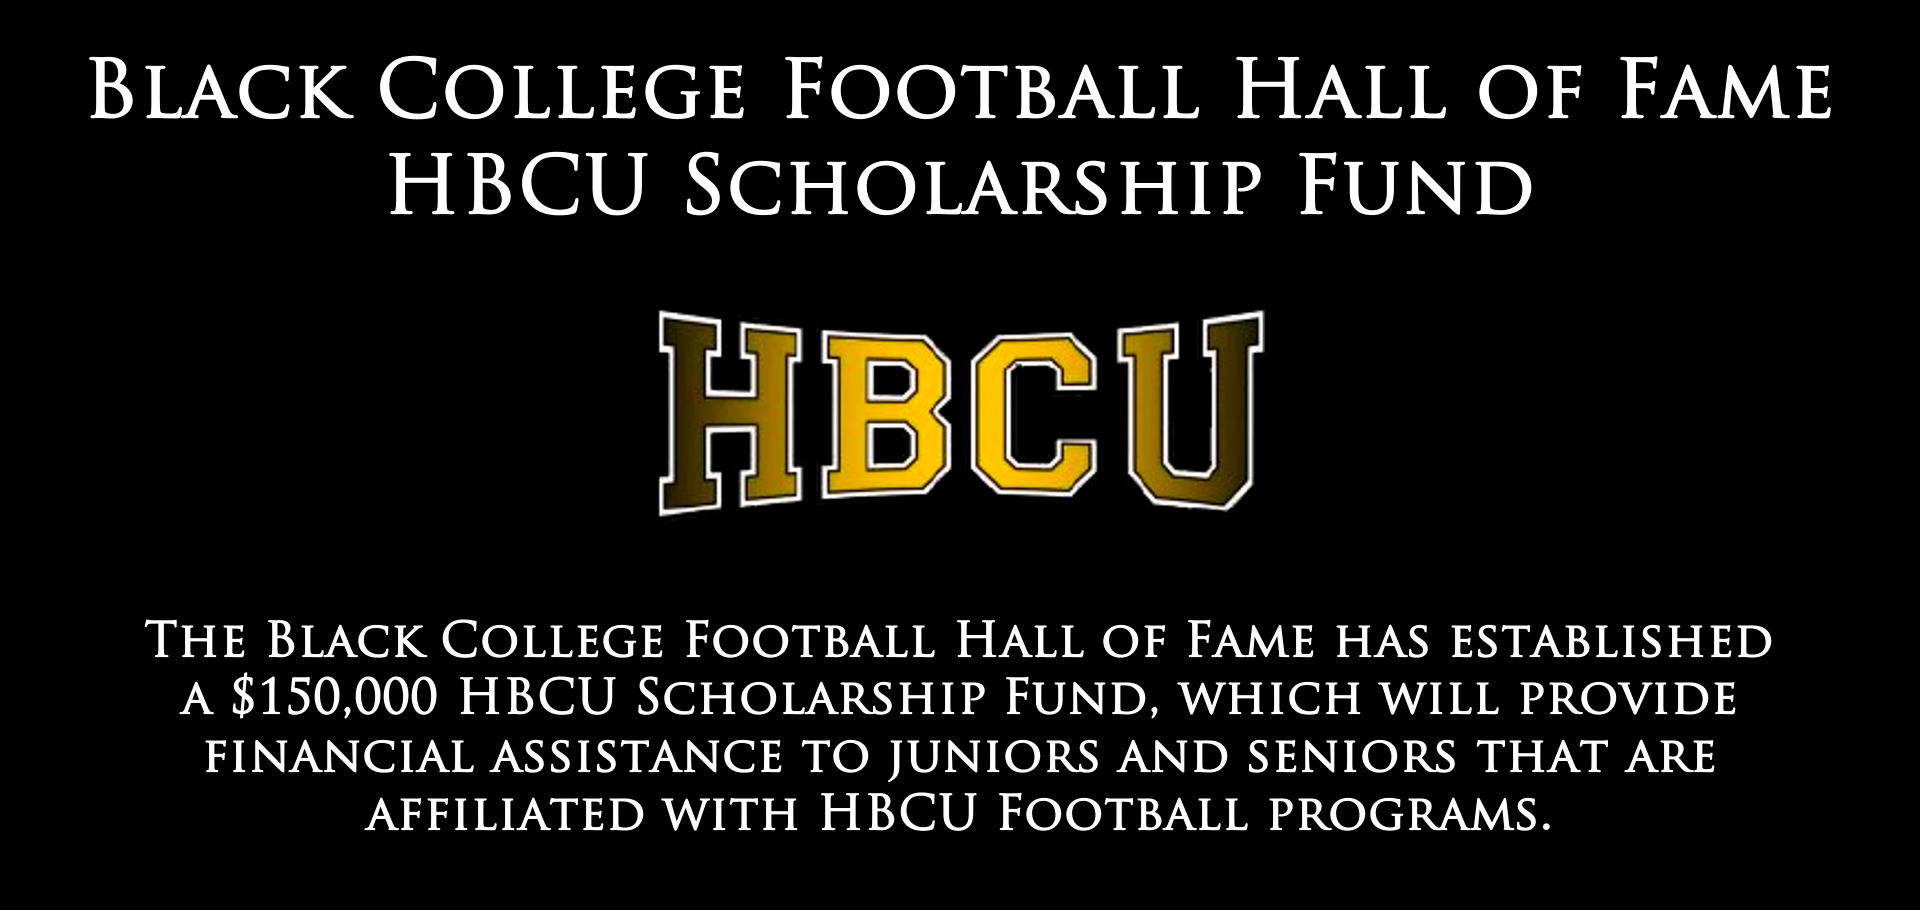 The Black College Football Hall of Fame has established a $150,000 HBCU Scholarship Fund.